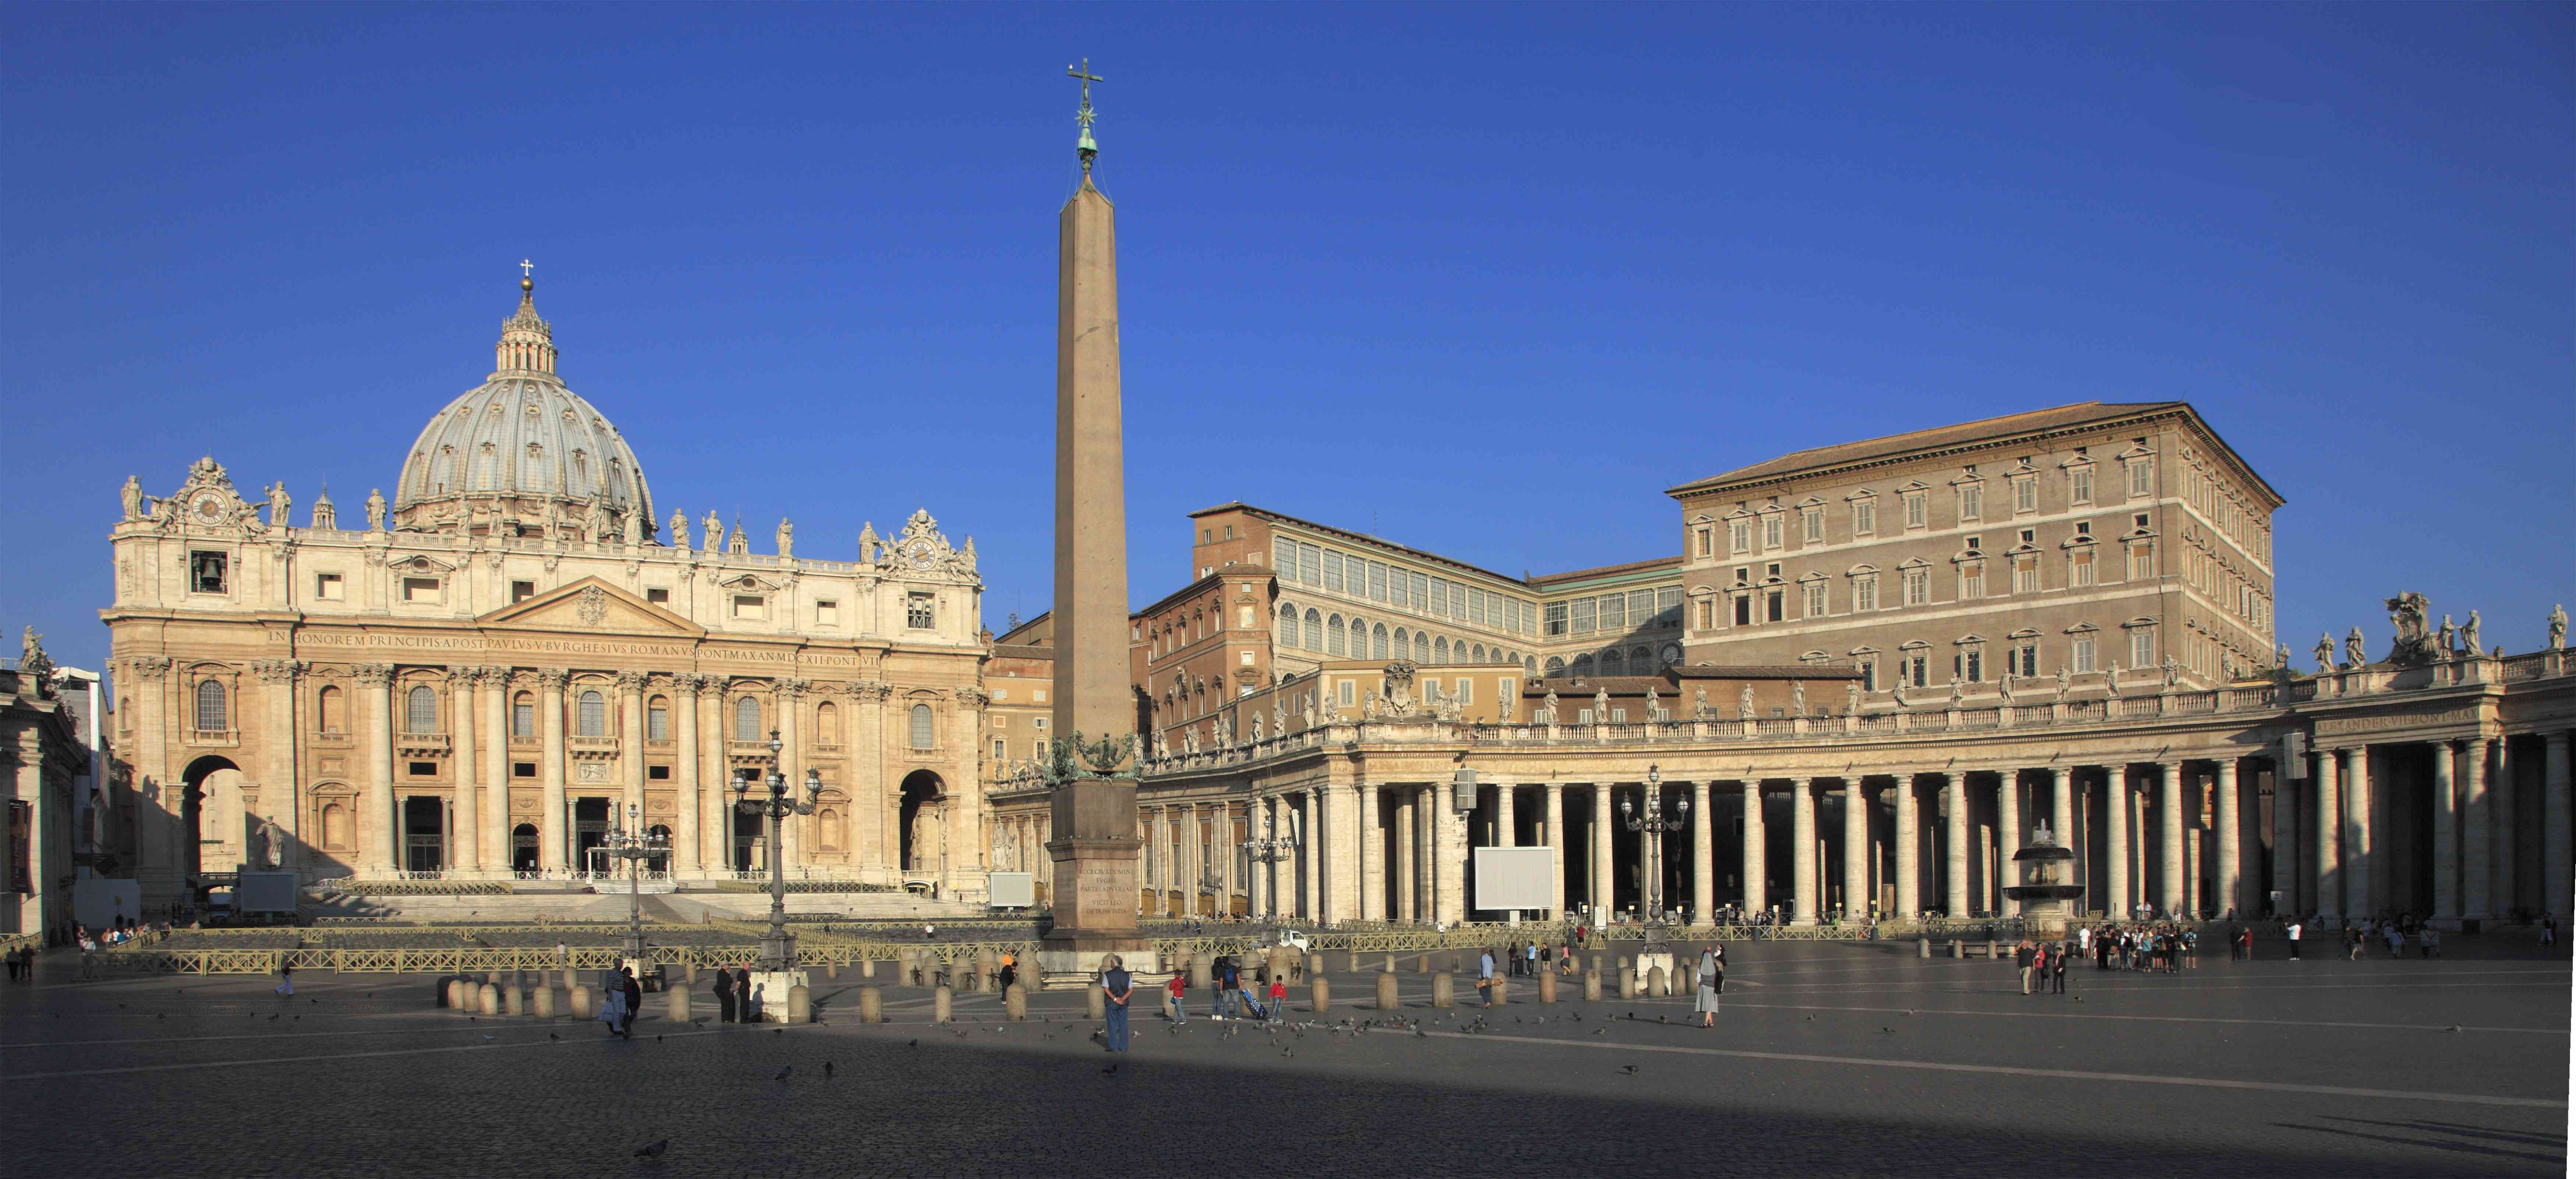 Vatican, St Peter's Basilica, Vatican Palace, St Peter's Square,